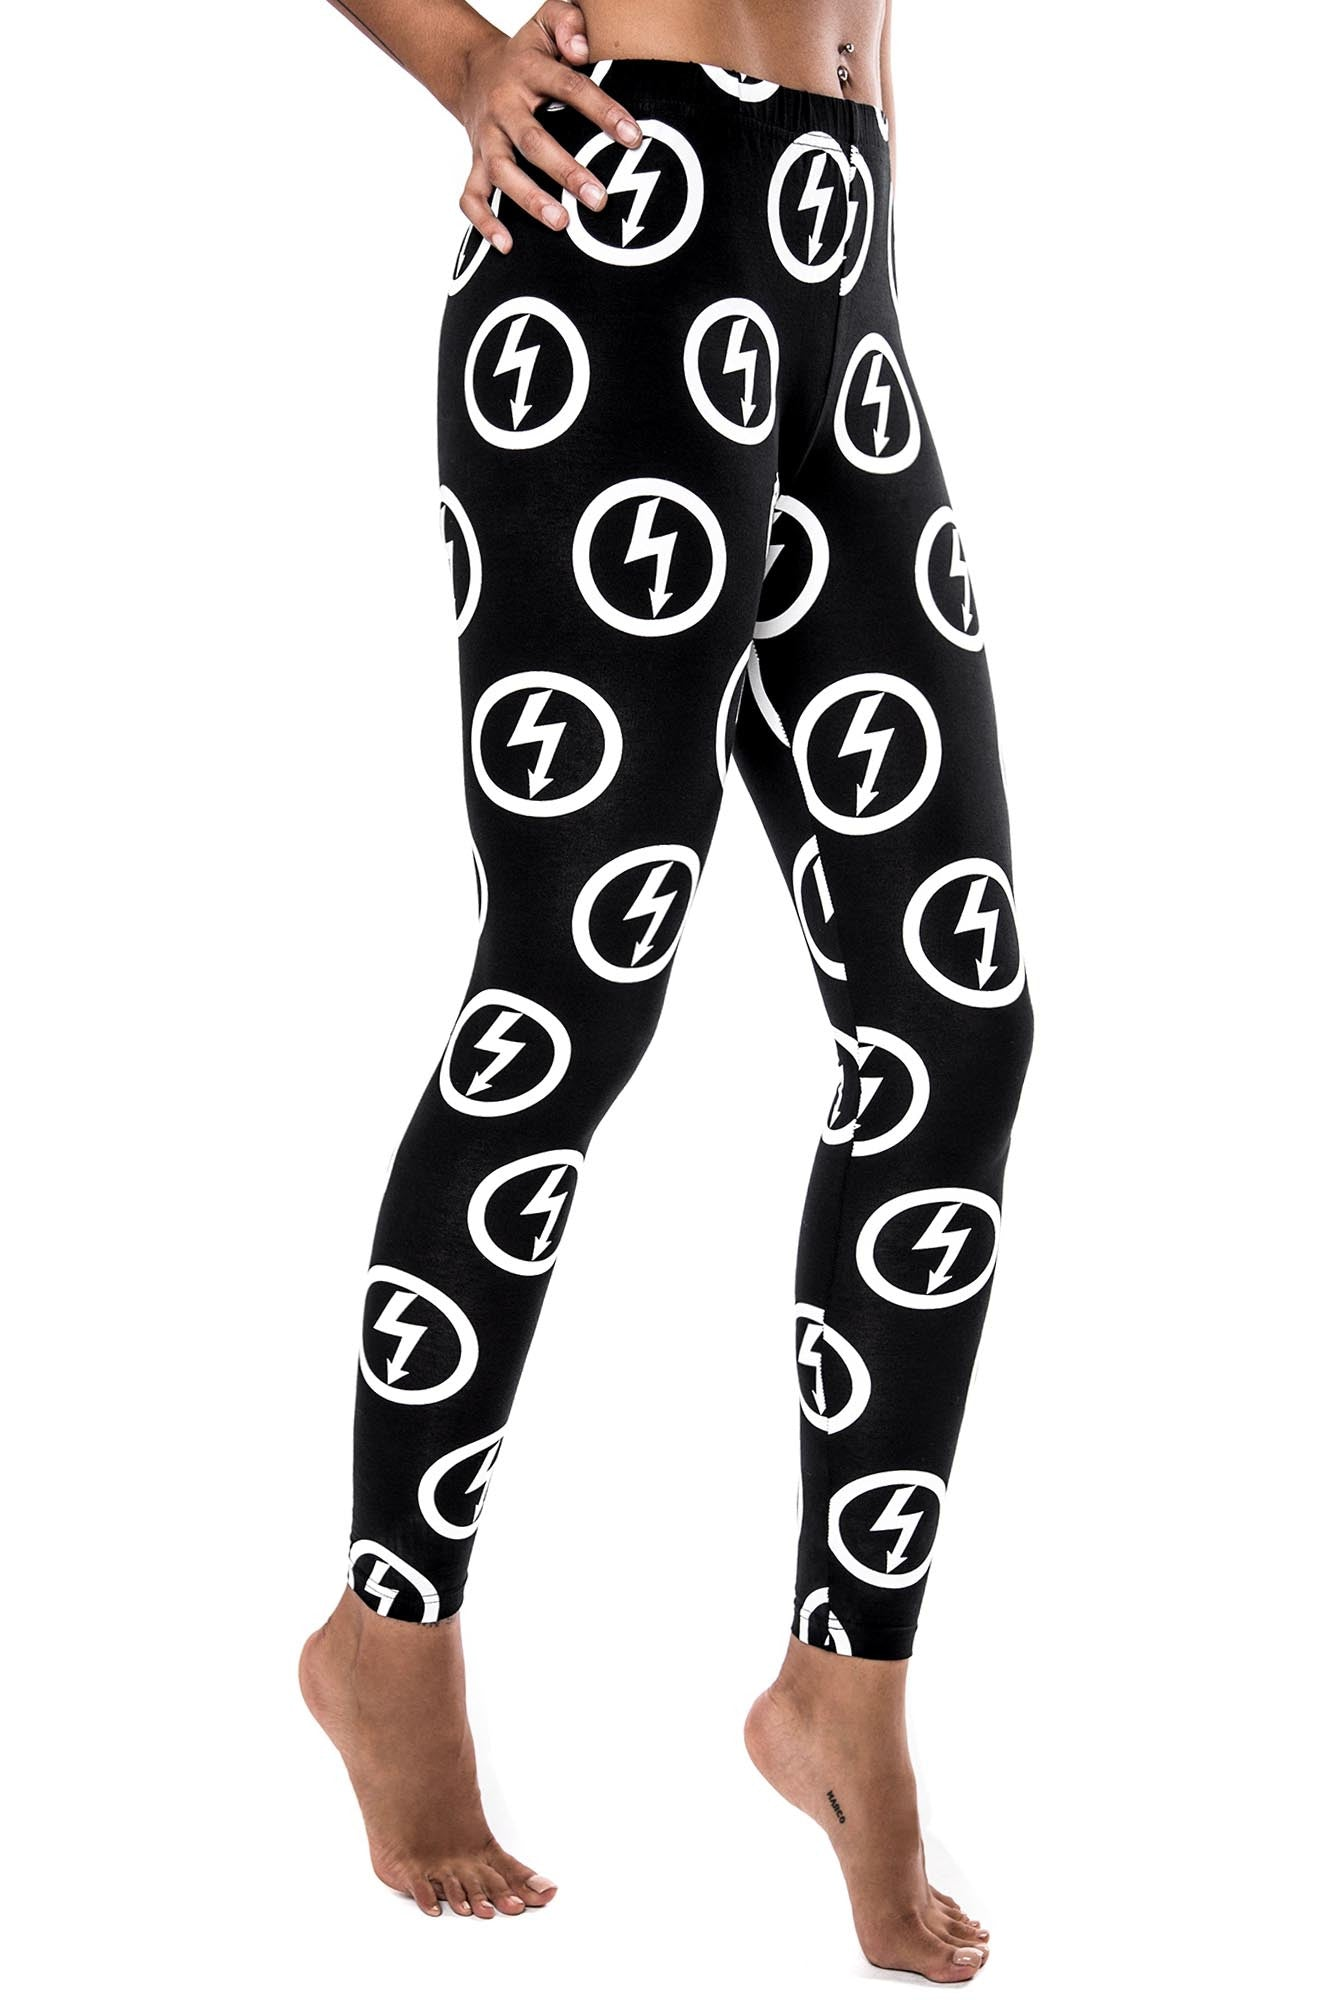 21700c2a9f4556 Fall from heaven leggings from KILLSTAR x MARILYN MANSON. Double tap to zoom